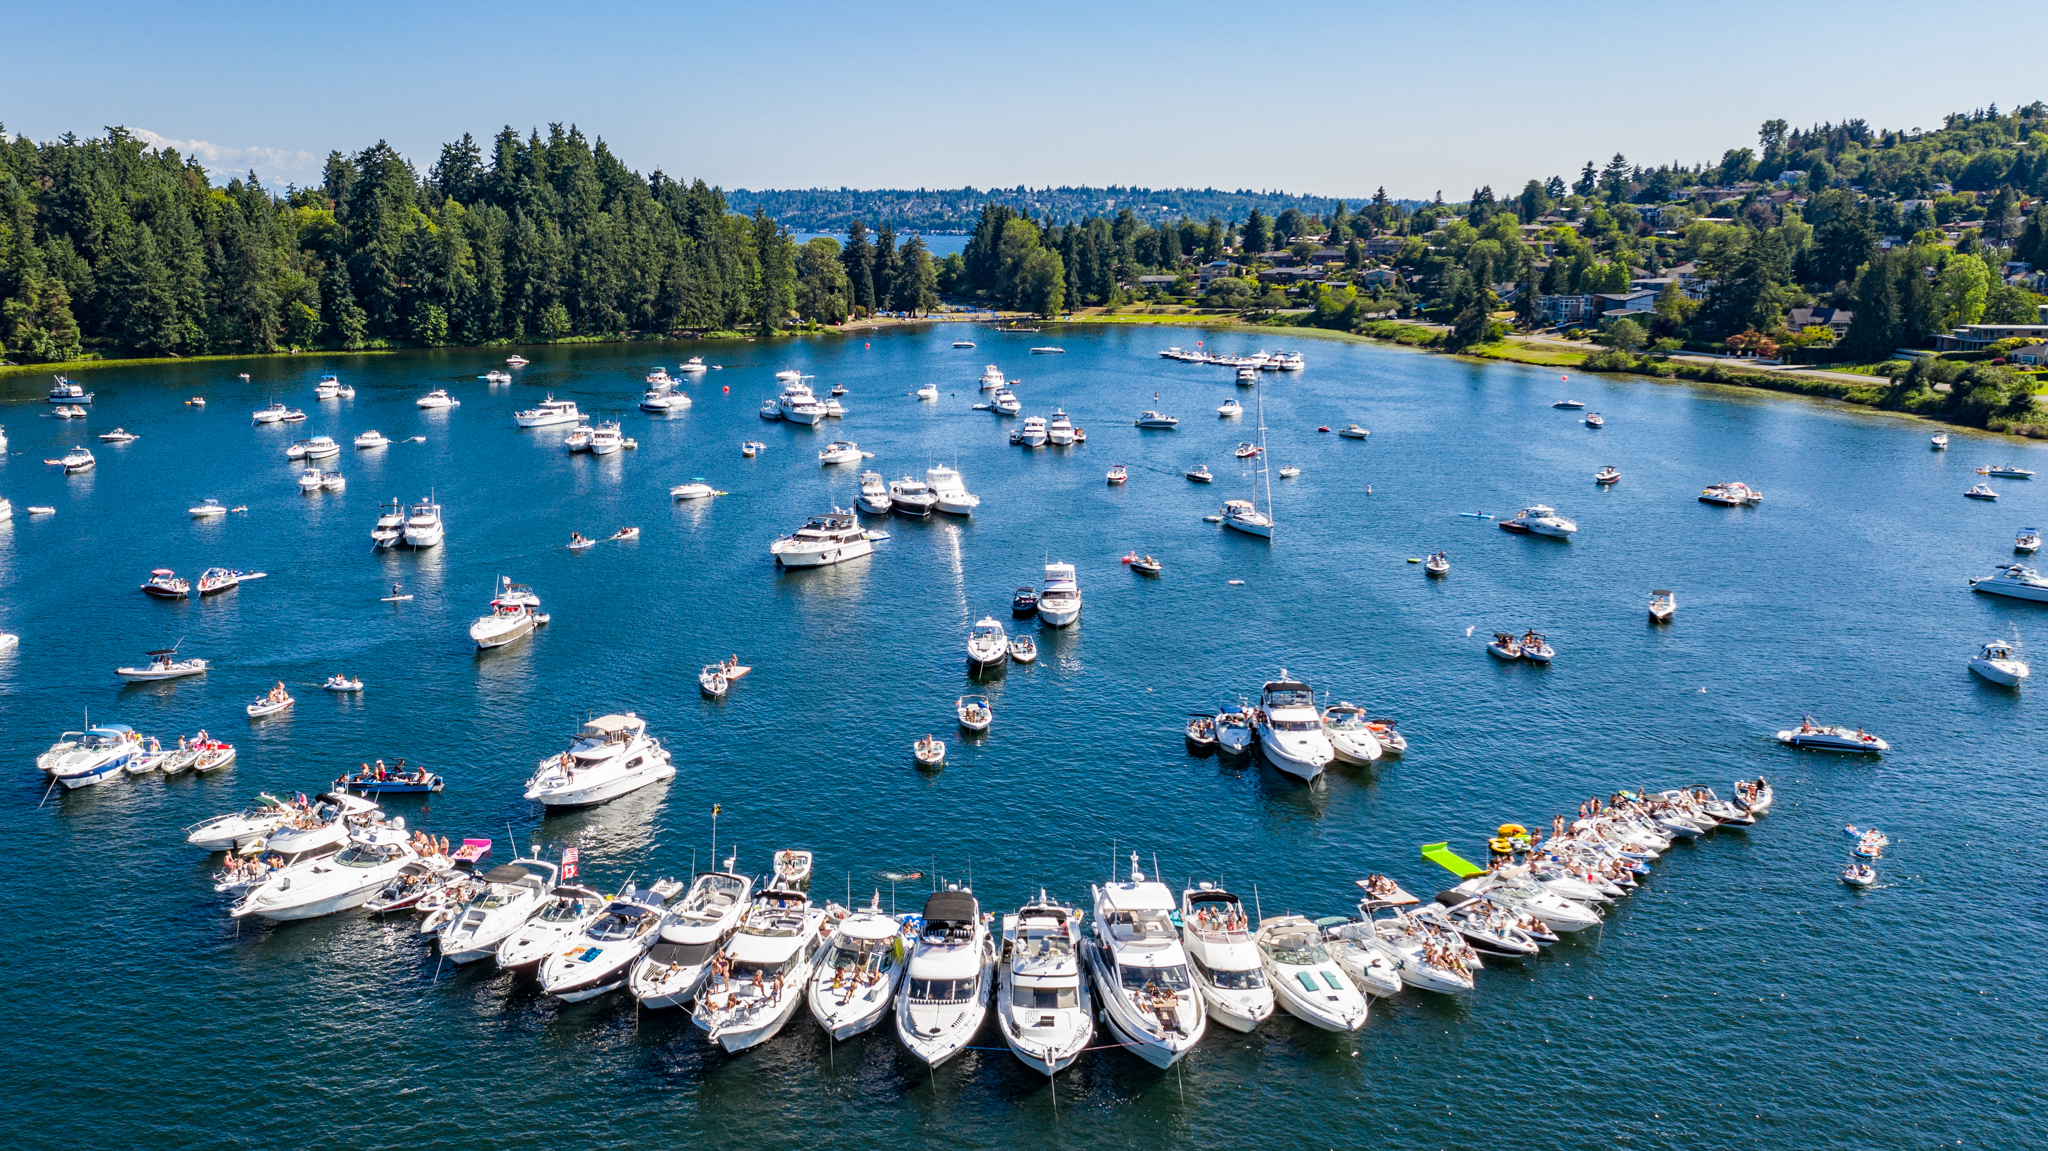 "It's Seafair Weekend 2020 (minus the fair and Blue Angels), so we thought we'd bring you some photos to remind you of the Seafairs of years past and present! Temperatures are high, and the lake is open - what is your favorite way to social distance while enjoying the water? From water sports to taking in views of Mt. Rainier to the Ballard Locks to Duck Dodge - the options are endless and, if following guidelines, safe. Enjoy Lake Washington during the hottest month of summer! Note: All photos, including people, are from 2018/2019; aerial shots are from 2020. (Image:{&nbsp;}<a  href=""https://andrewjacobmedia.com/"" target=""_blank"" title=""https://andrewjacobmedia.com/"">Andrew Meade</a>{&nbsp;}/ Seattle Refined)"